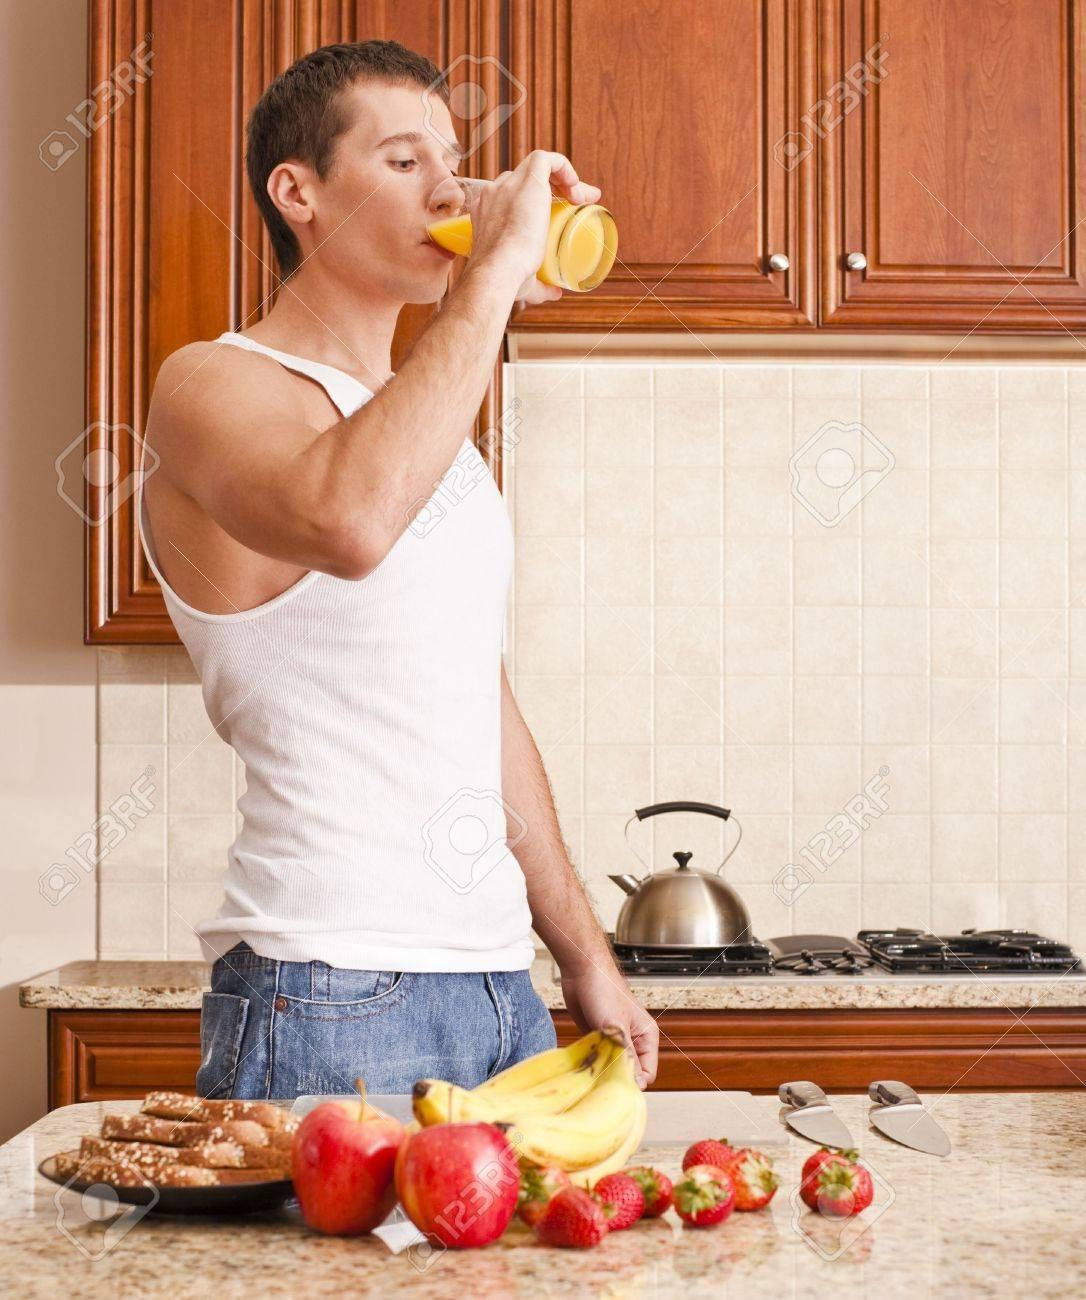 Young man wearing tank top and jeans in kitchen drinking a glass of orange juice. Vertical shot. Stock Photo - 6249270